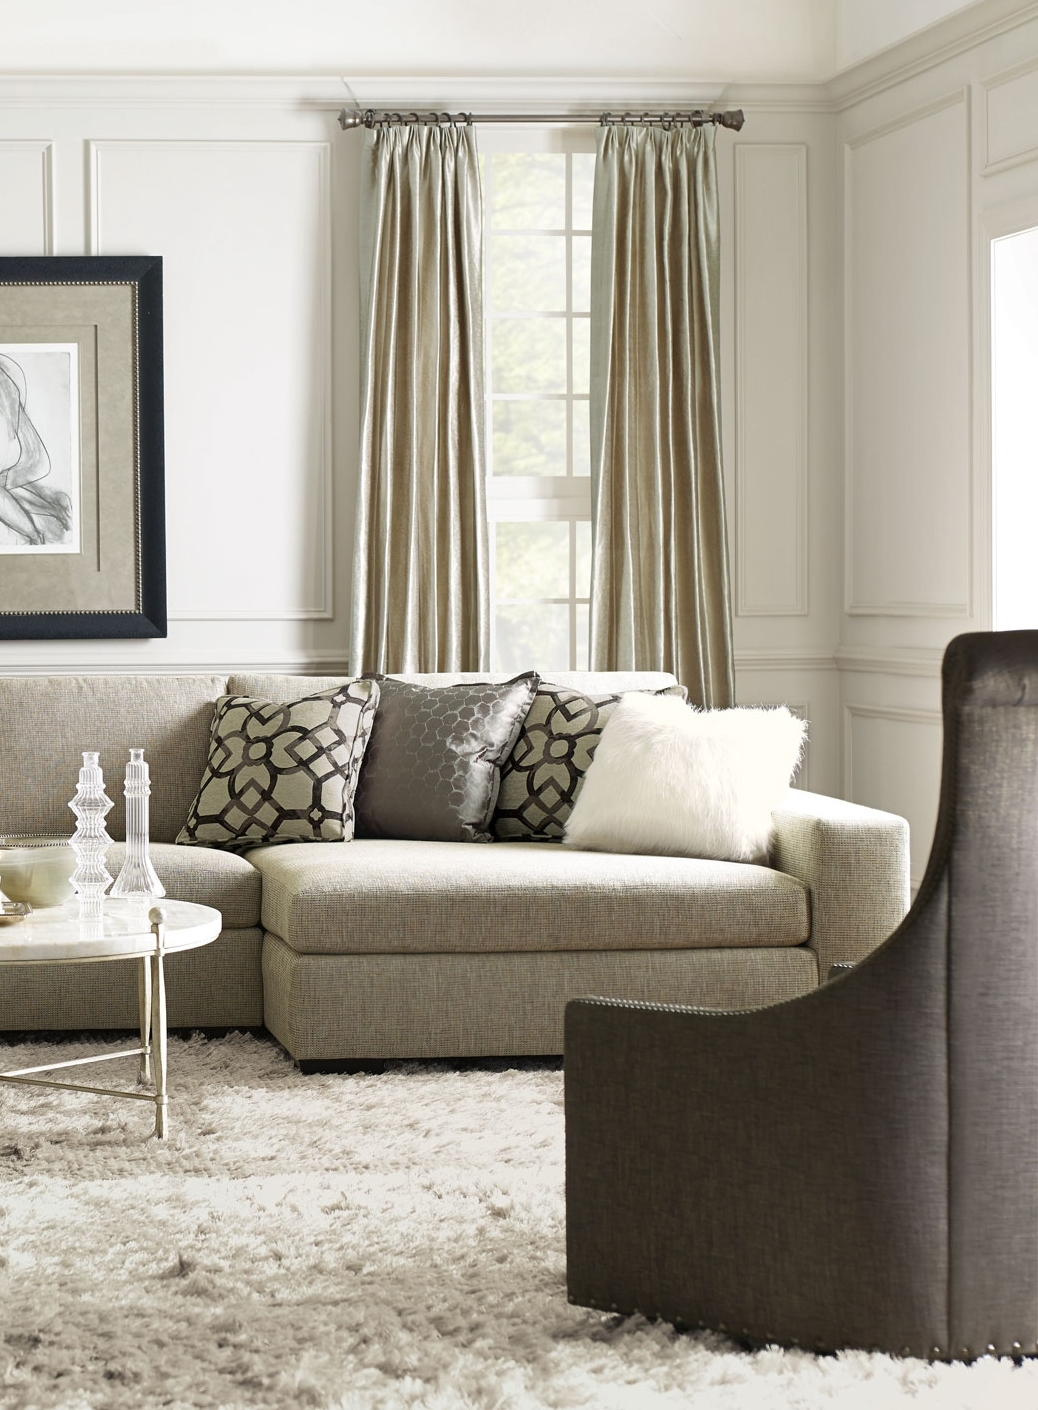 Bernhardt | Orlando Sectional Sofa, Maurice Swivel Chair, Clarion Intended For Orlando Sectional Sofas (Image 2 of 10)